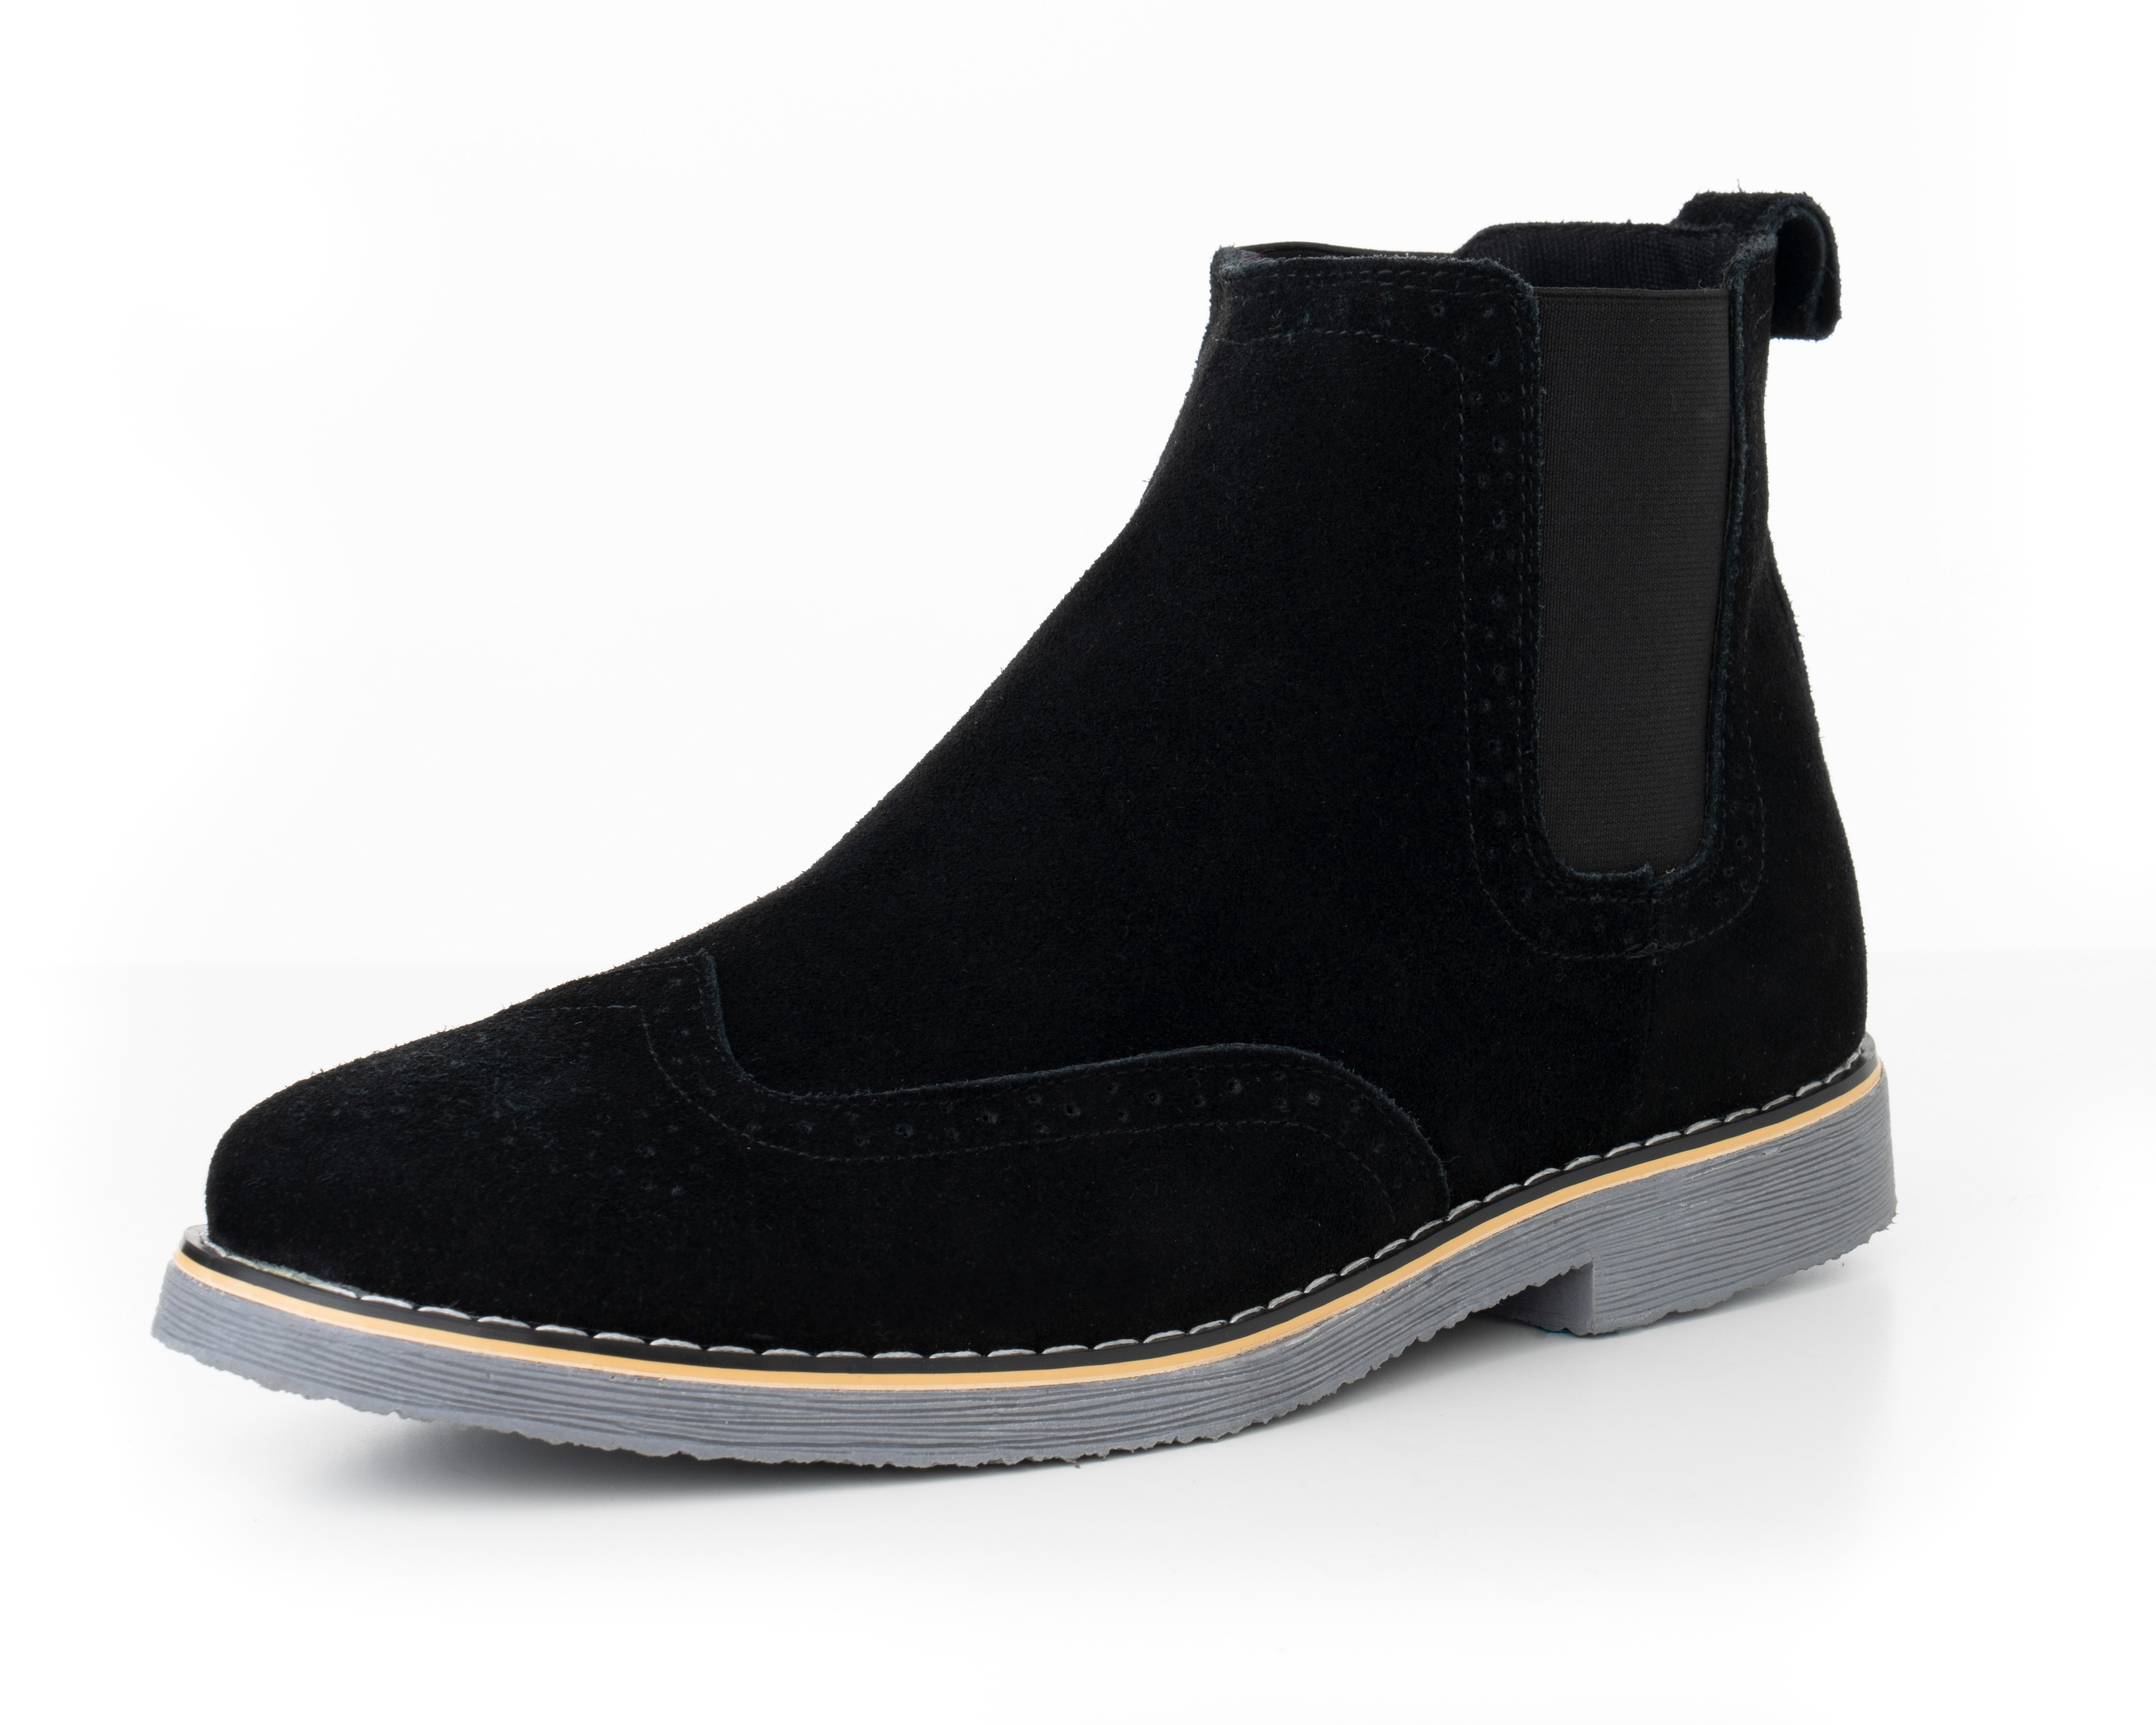 444ddf2039f7 Alpine Swiss Mens Chelsea Boots Genuine Suede Dress Ankle Boots Wingtip  Shoes